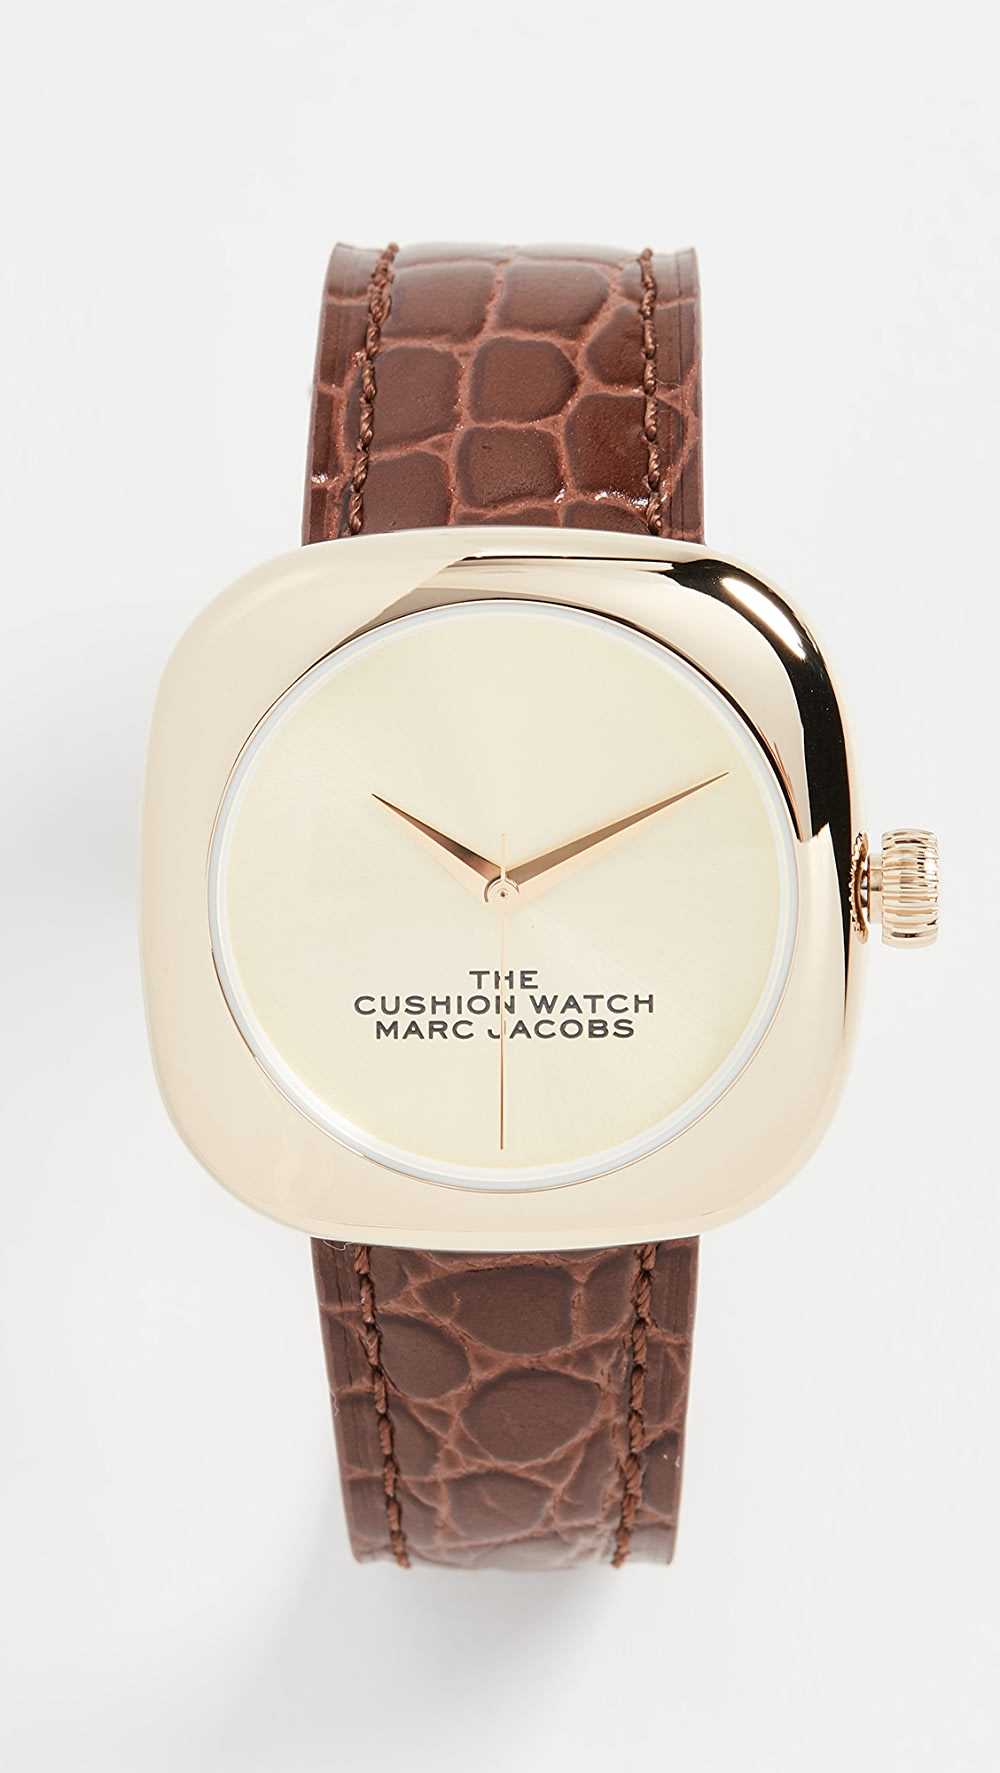 Search For Flights The Marc Jacobs - The Cushion Watch 36mm Durable Service